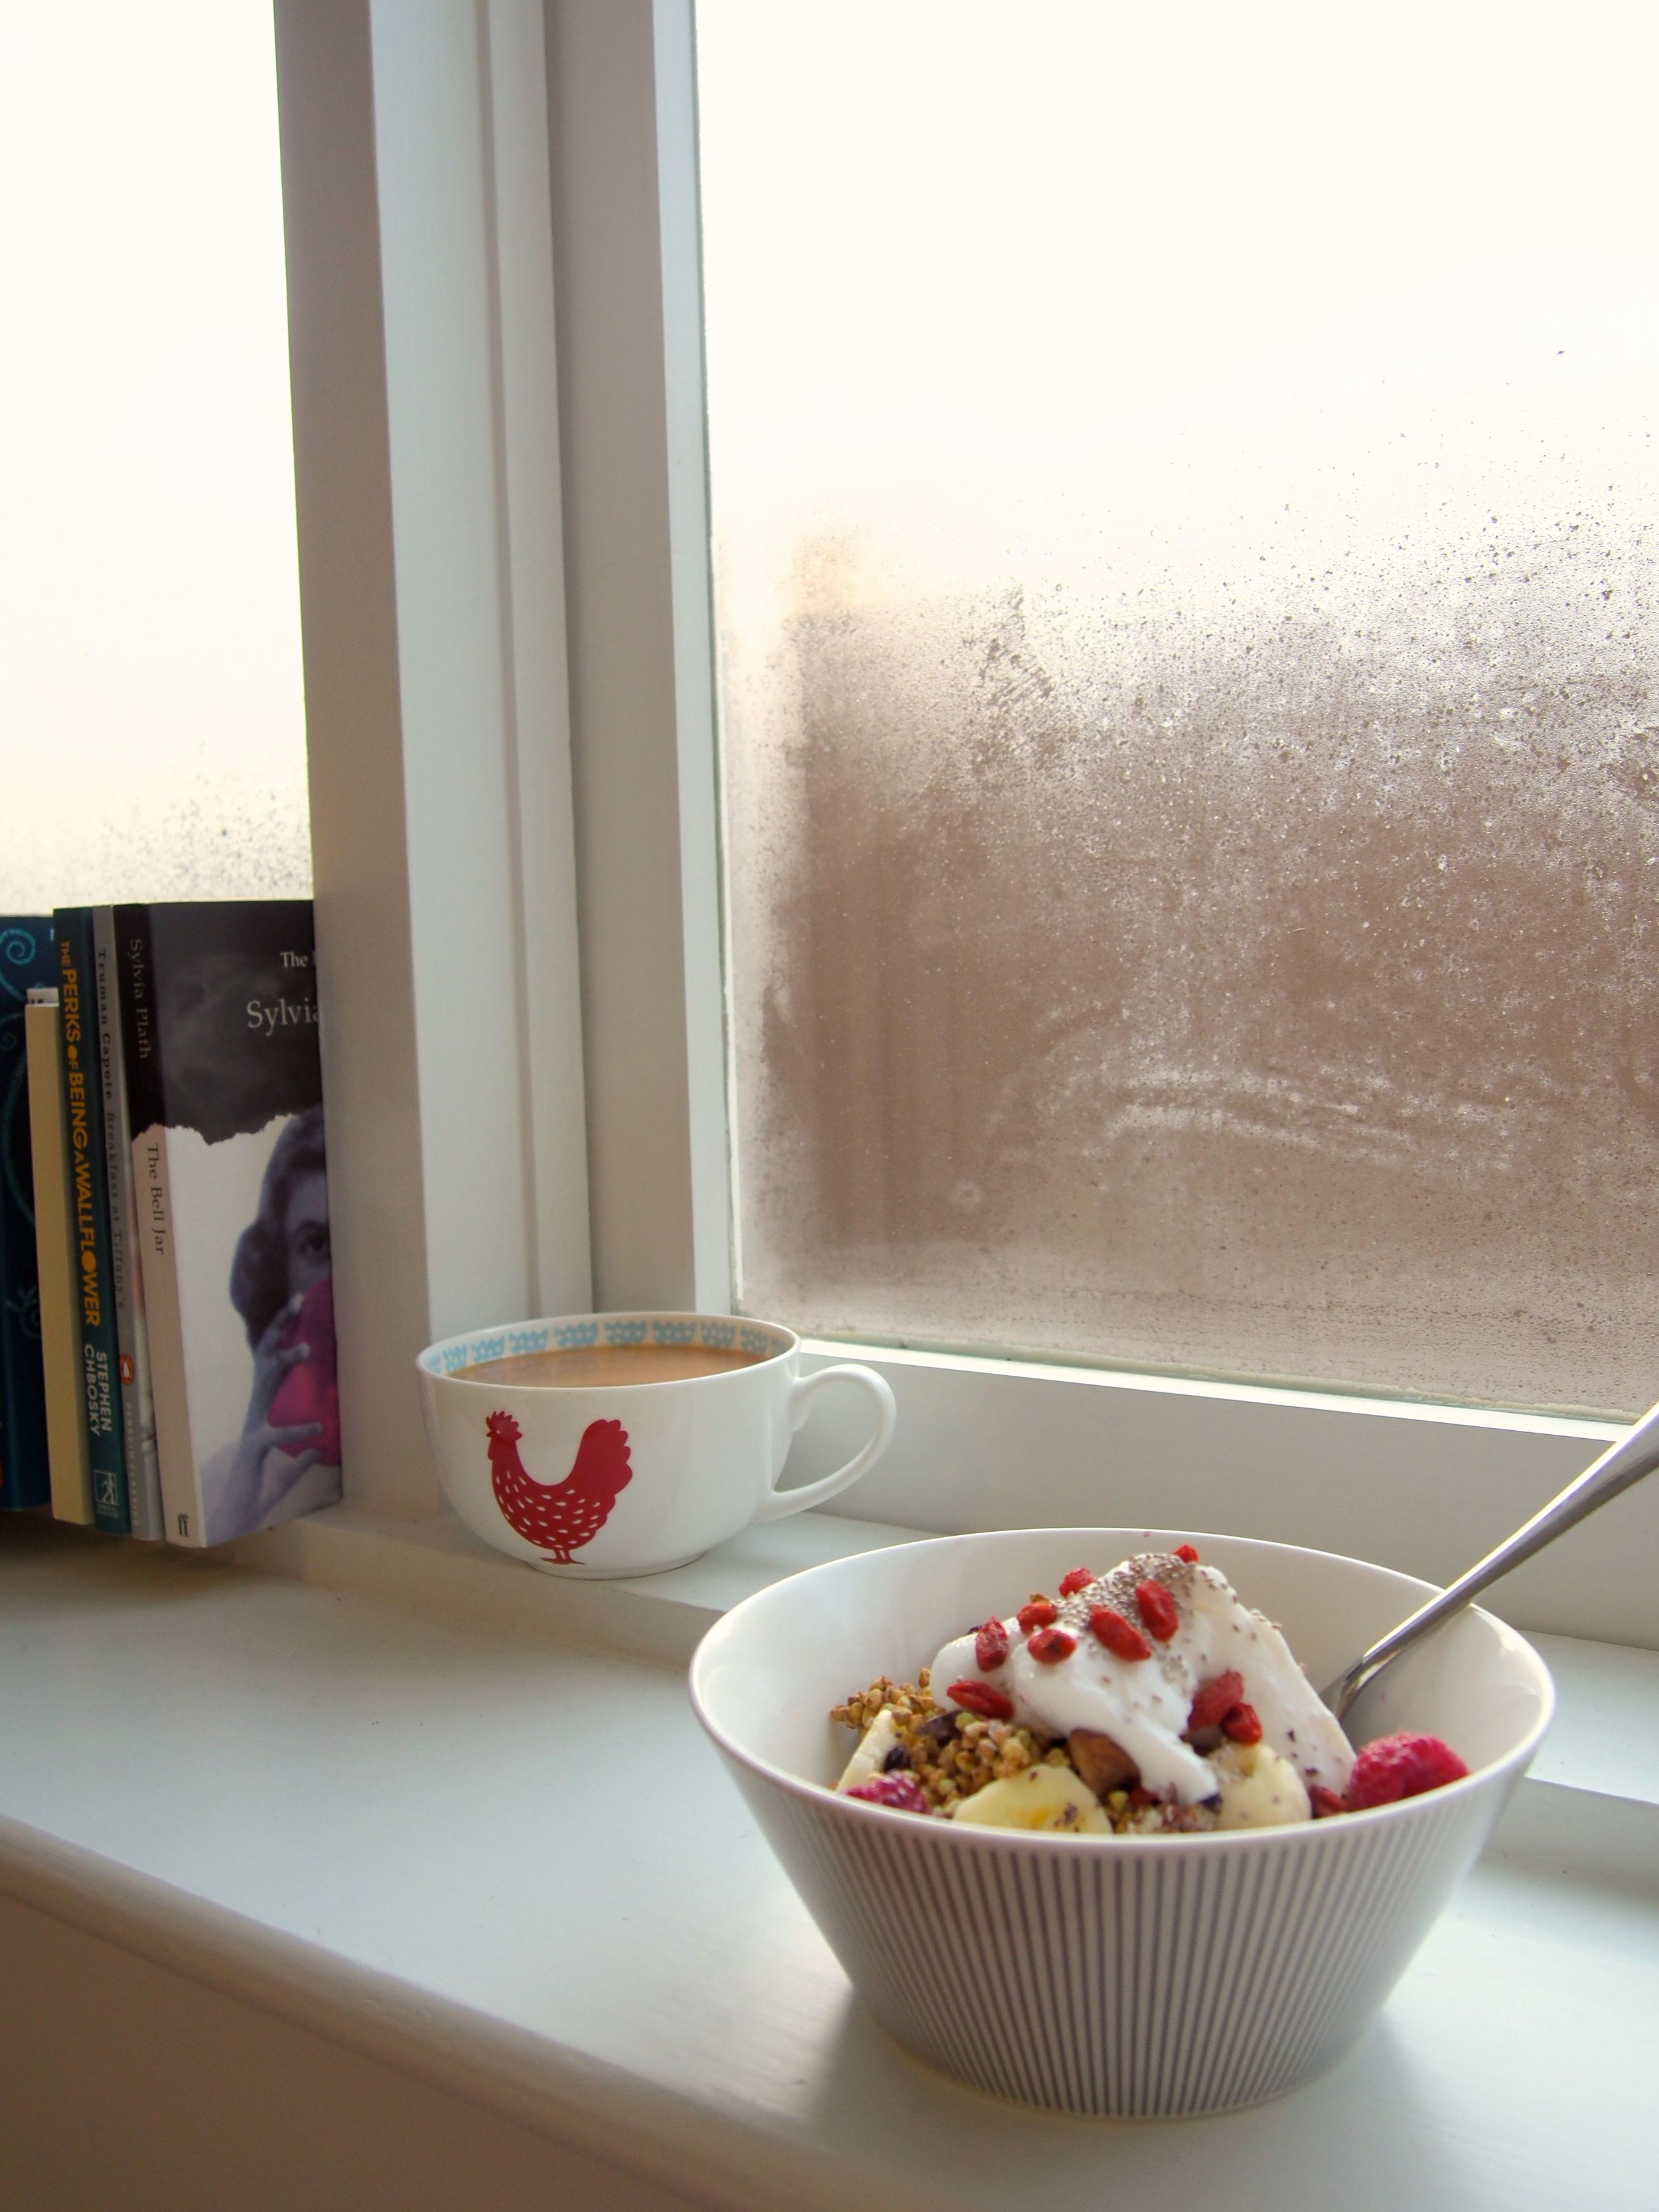 It's a beautiful morning today! Enjoy your porridge whilst sipping a cup of tea slowly in the mornings.